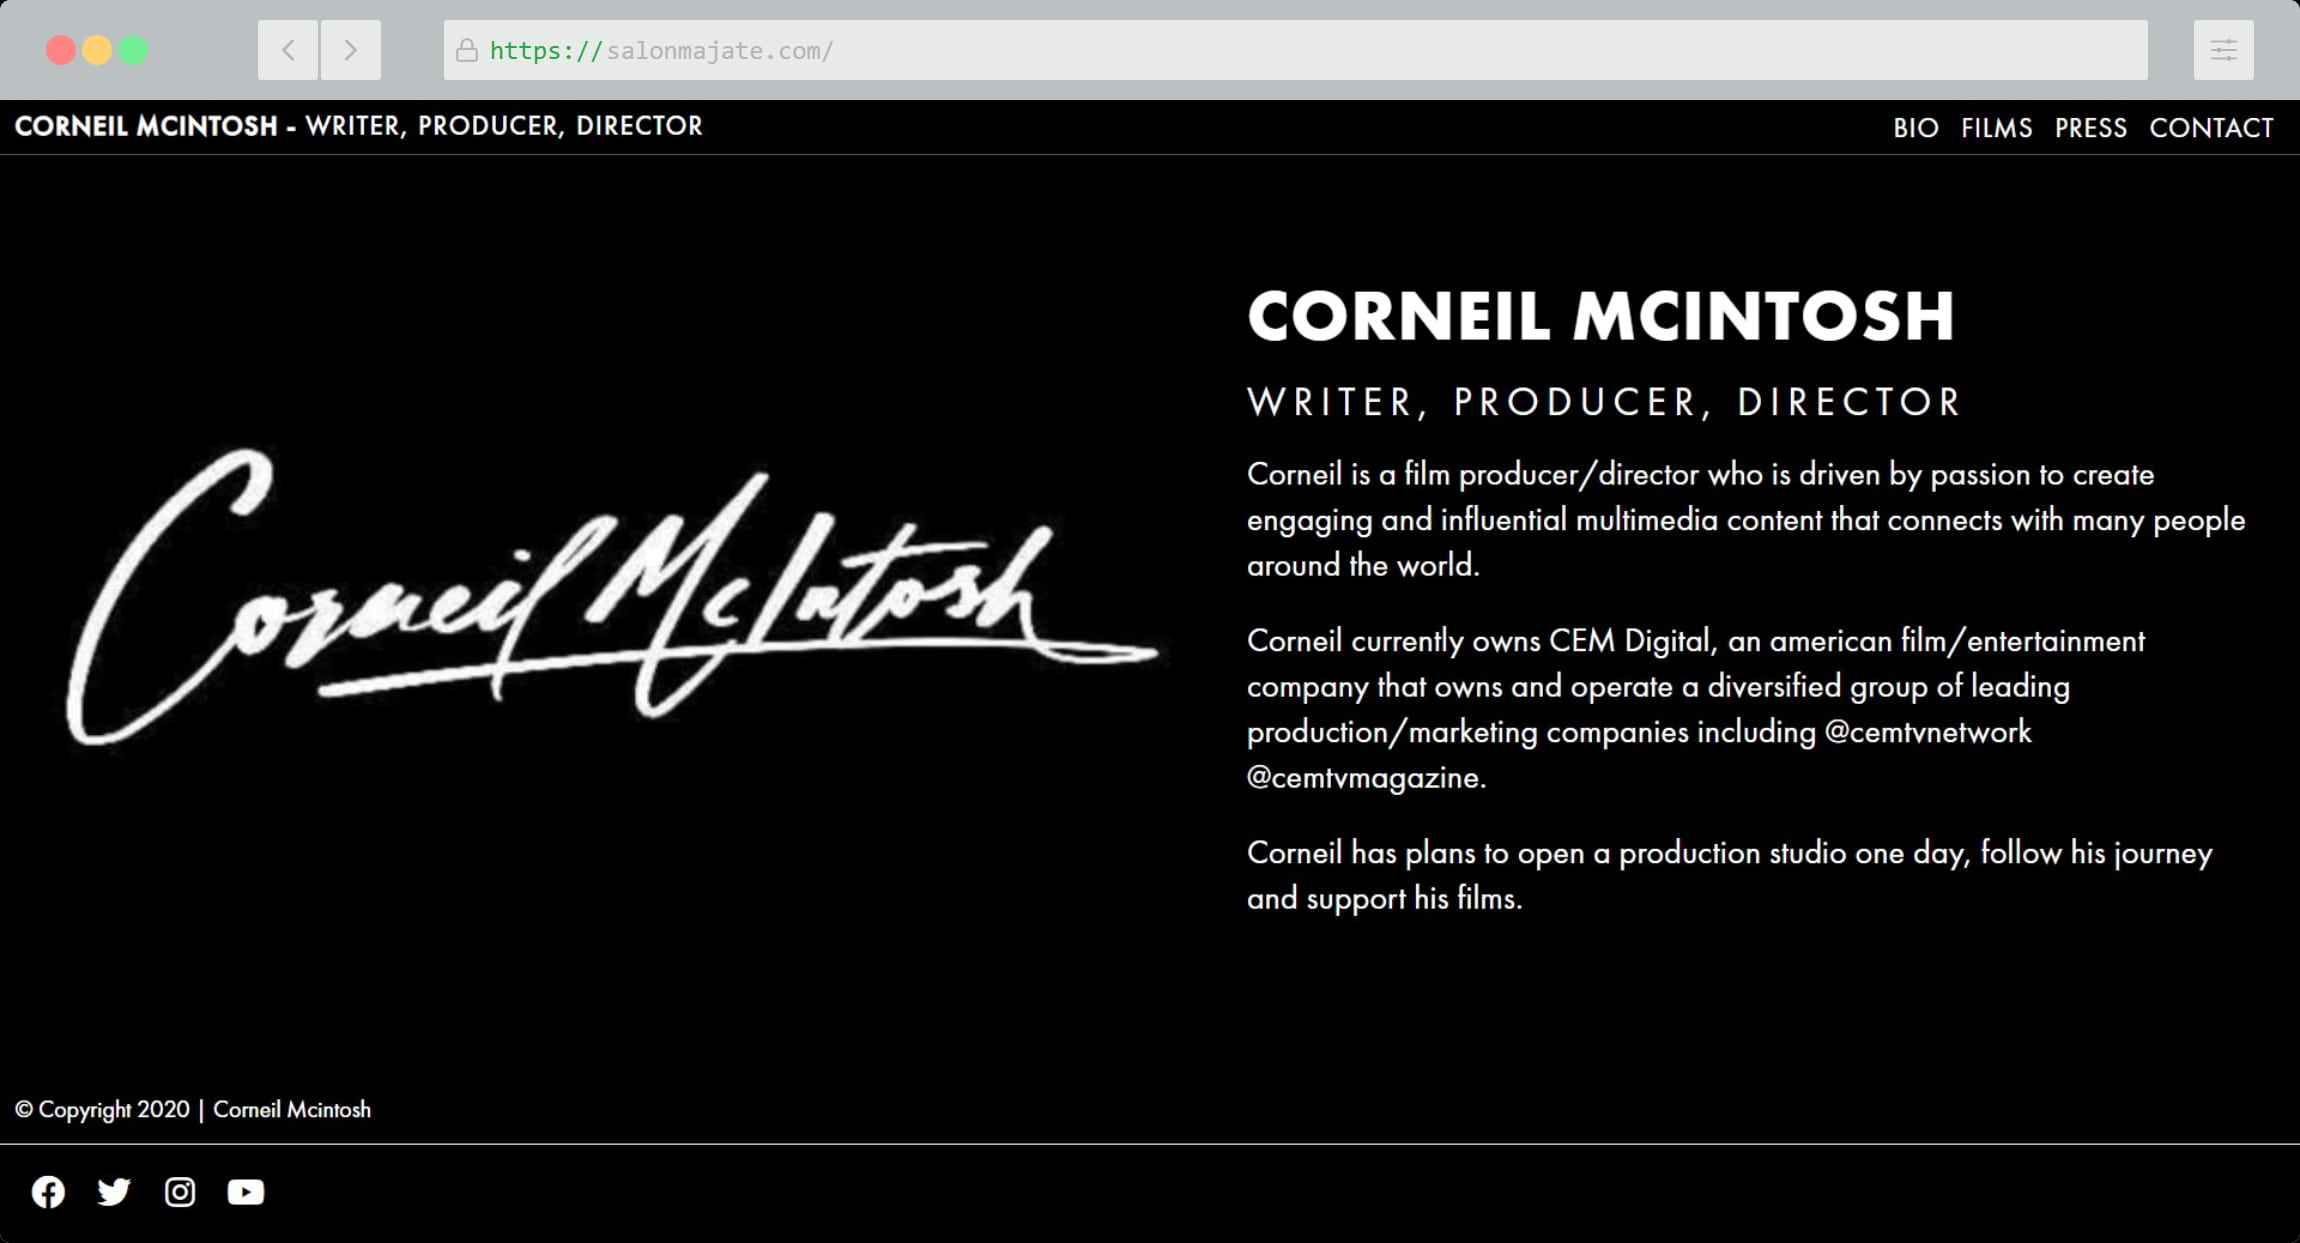 Corneil Mcintosh Website